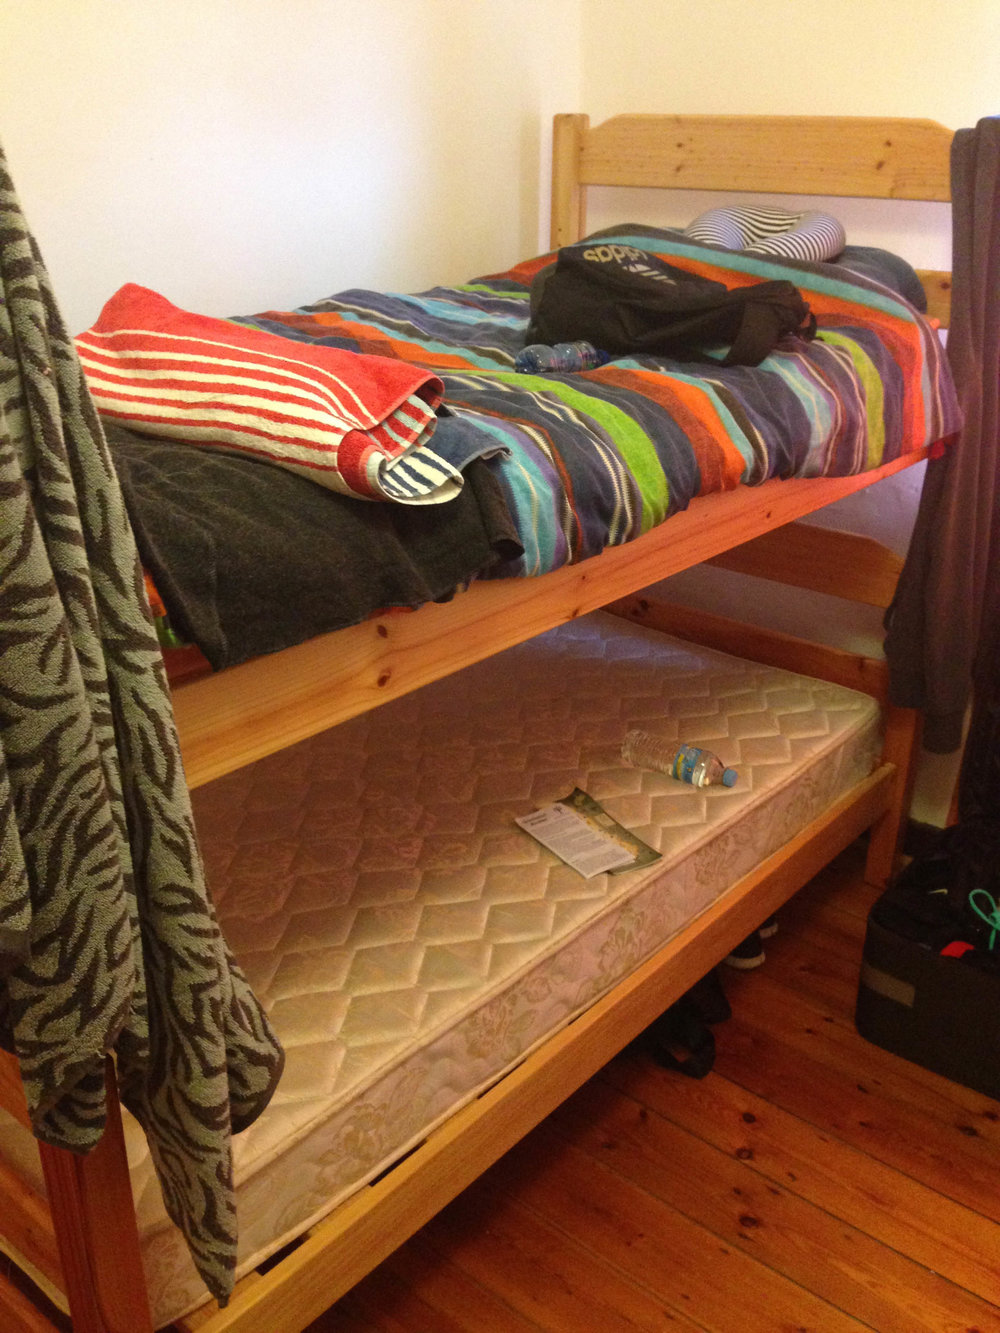 Basic bunks - nothing to complain about here.